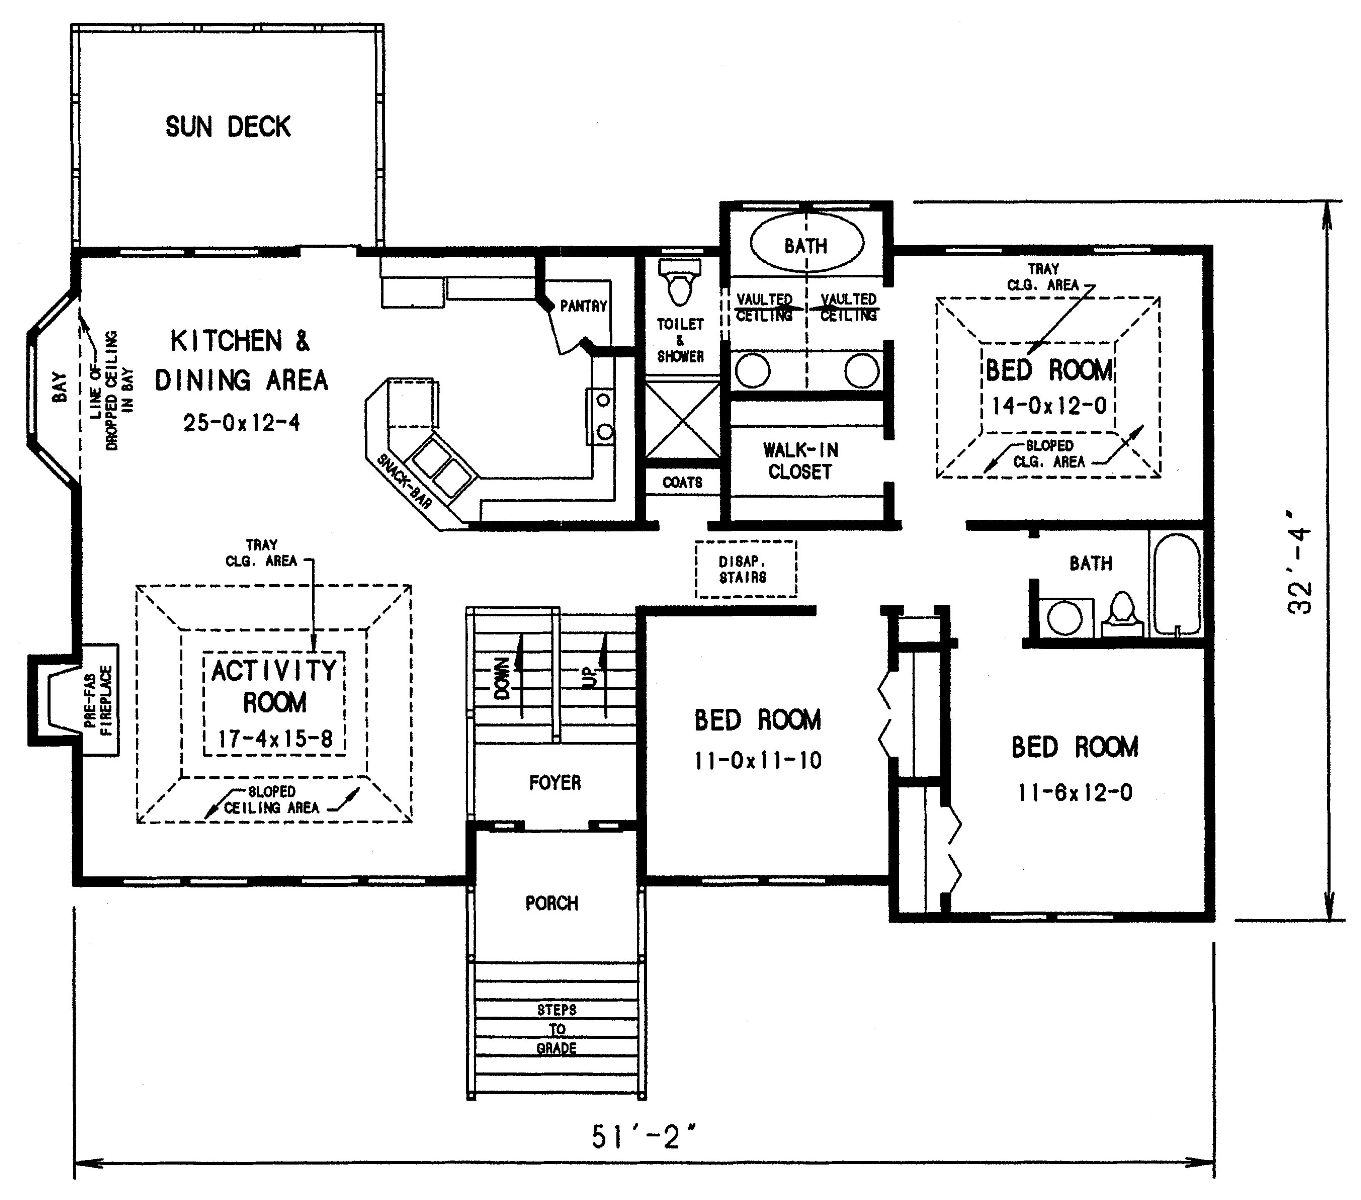 The Dahlonega 3303 - 3 Bedrooms and 2 Baths | The House Designers